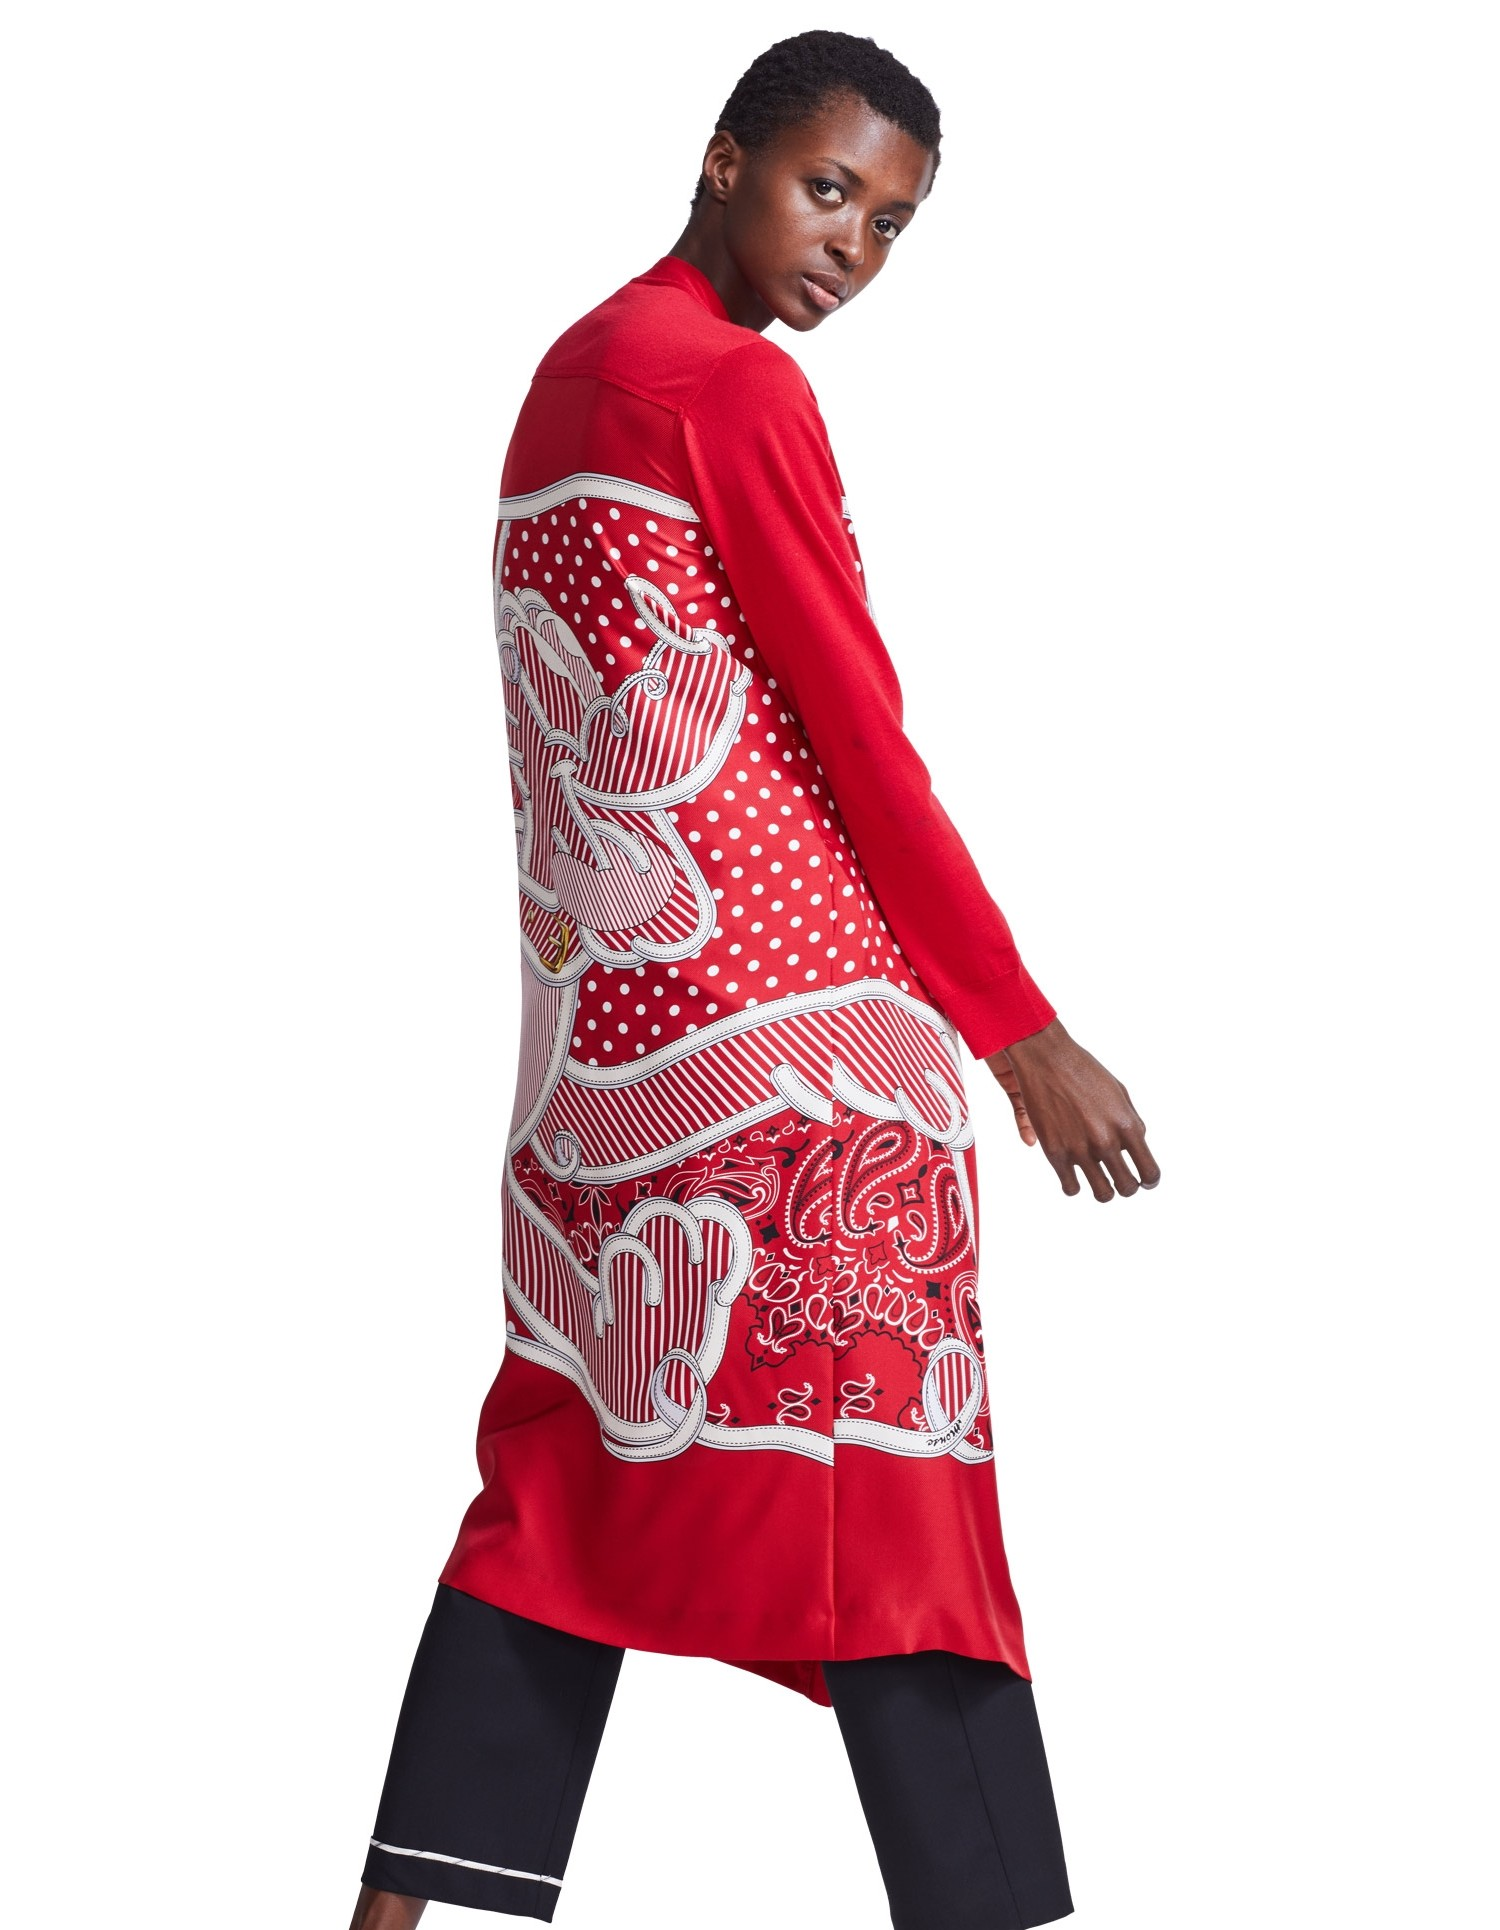 MONSE Pluto Bandana Cardigan in Red on Model Side